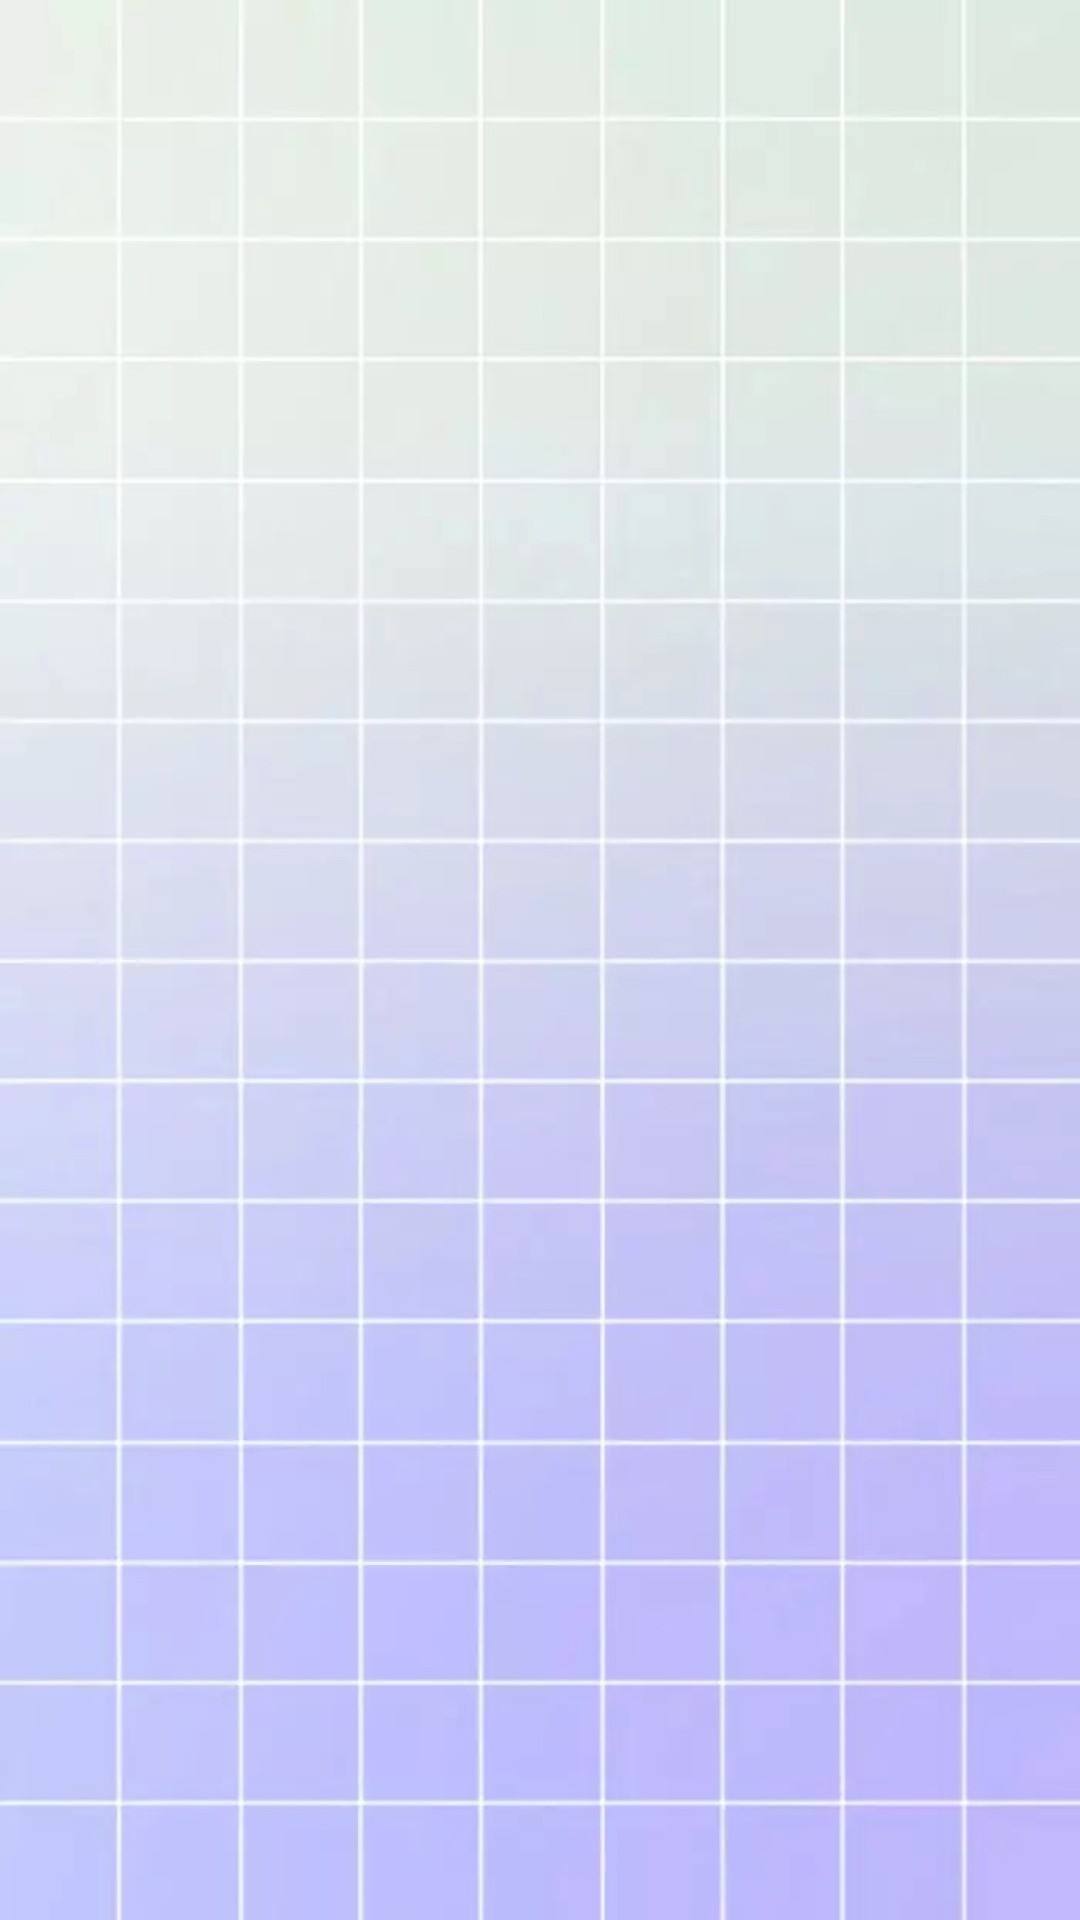 Request Grid Wallpaper Pastel Color Wallpaper Iphone - Aesthetic Grid Iphone Backgrounds - HD Wallpaper